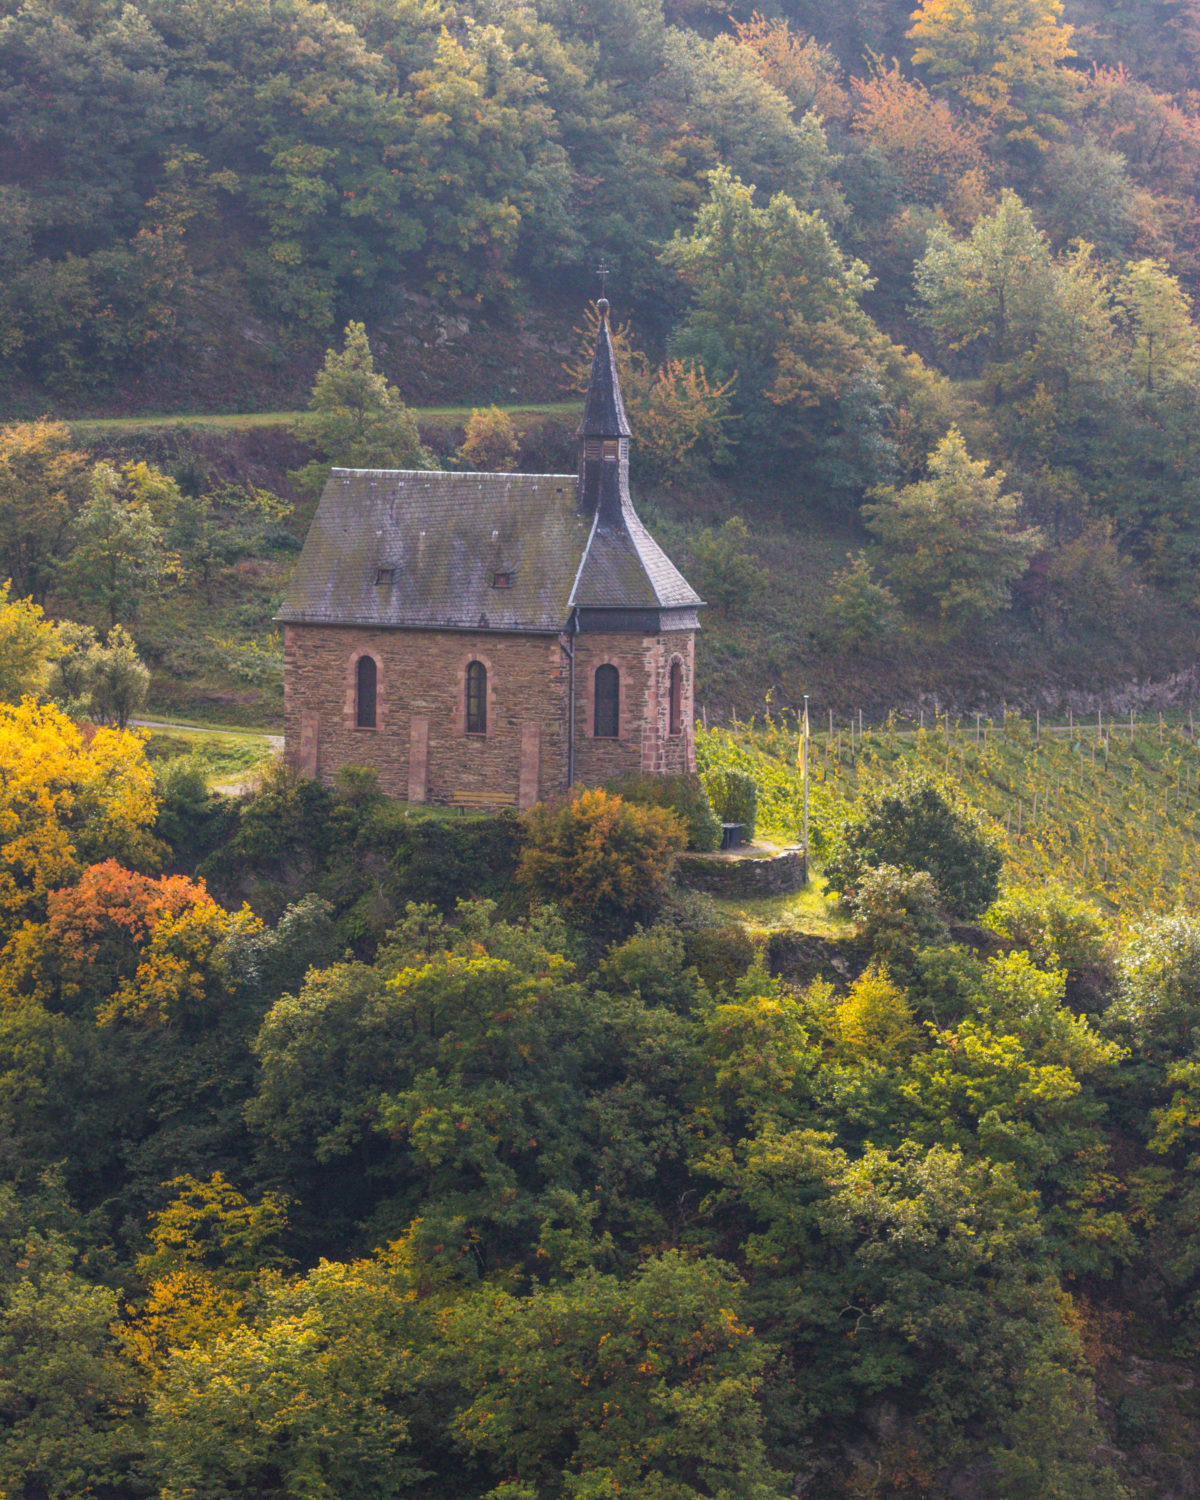 Clemenskapelle - not a castle but still, another small Rheingau gem